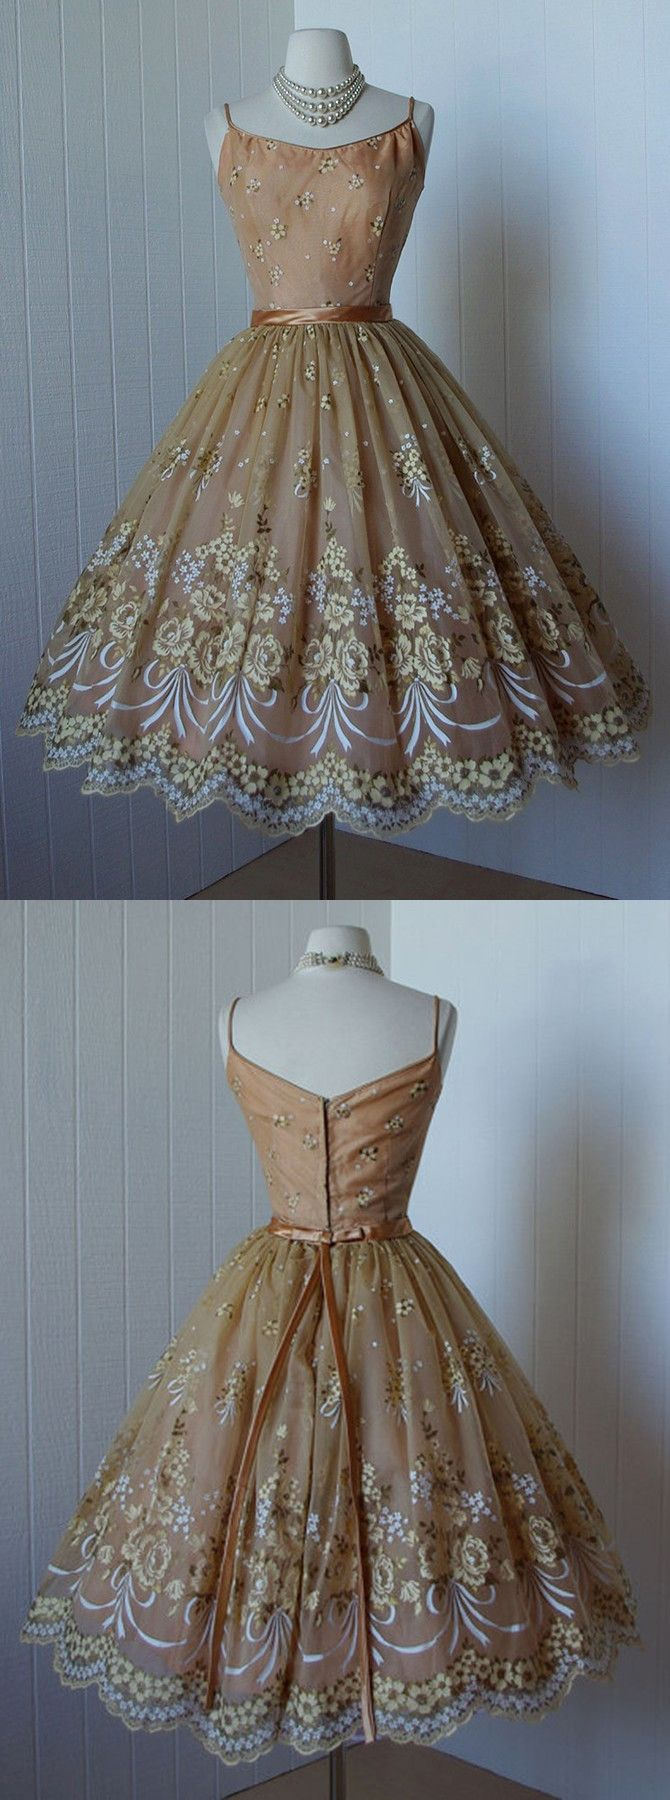 short homecoming dresses,lace homecoming dresses,50s vintage dresses,champagne homecoming dresses @simpledress2480